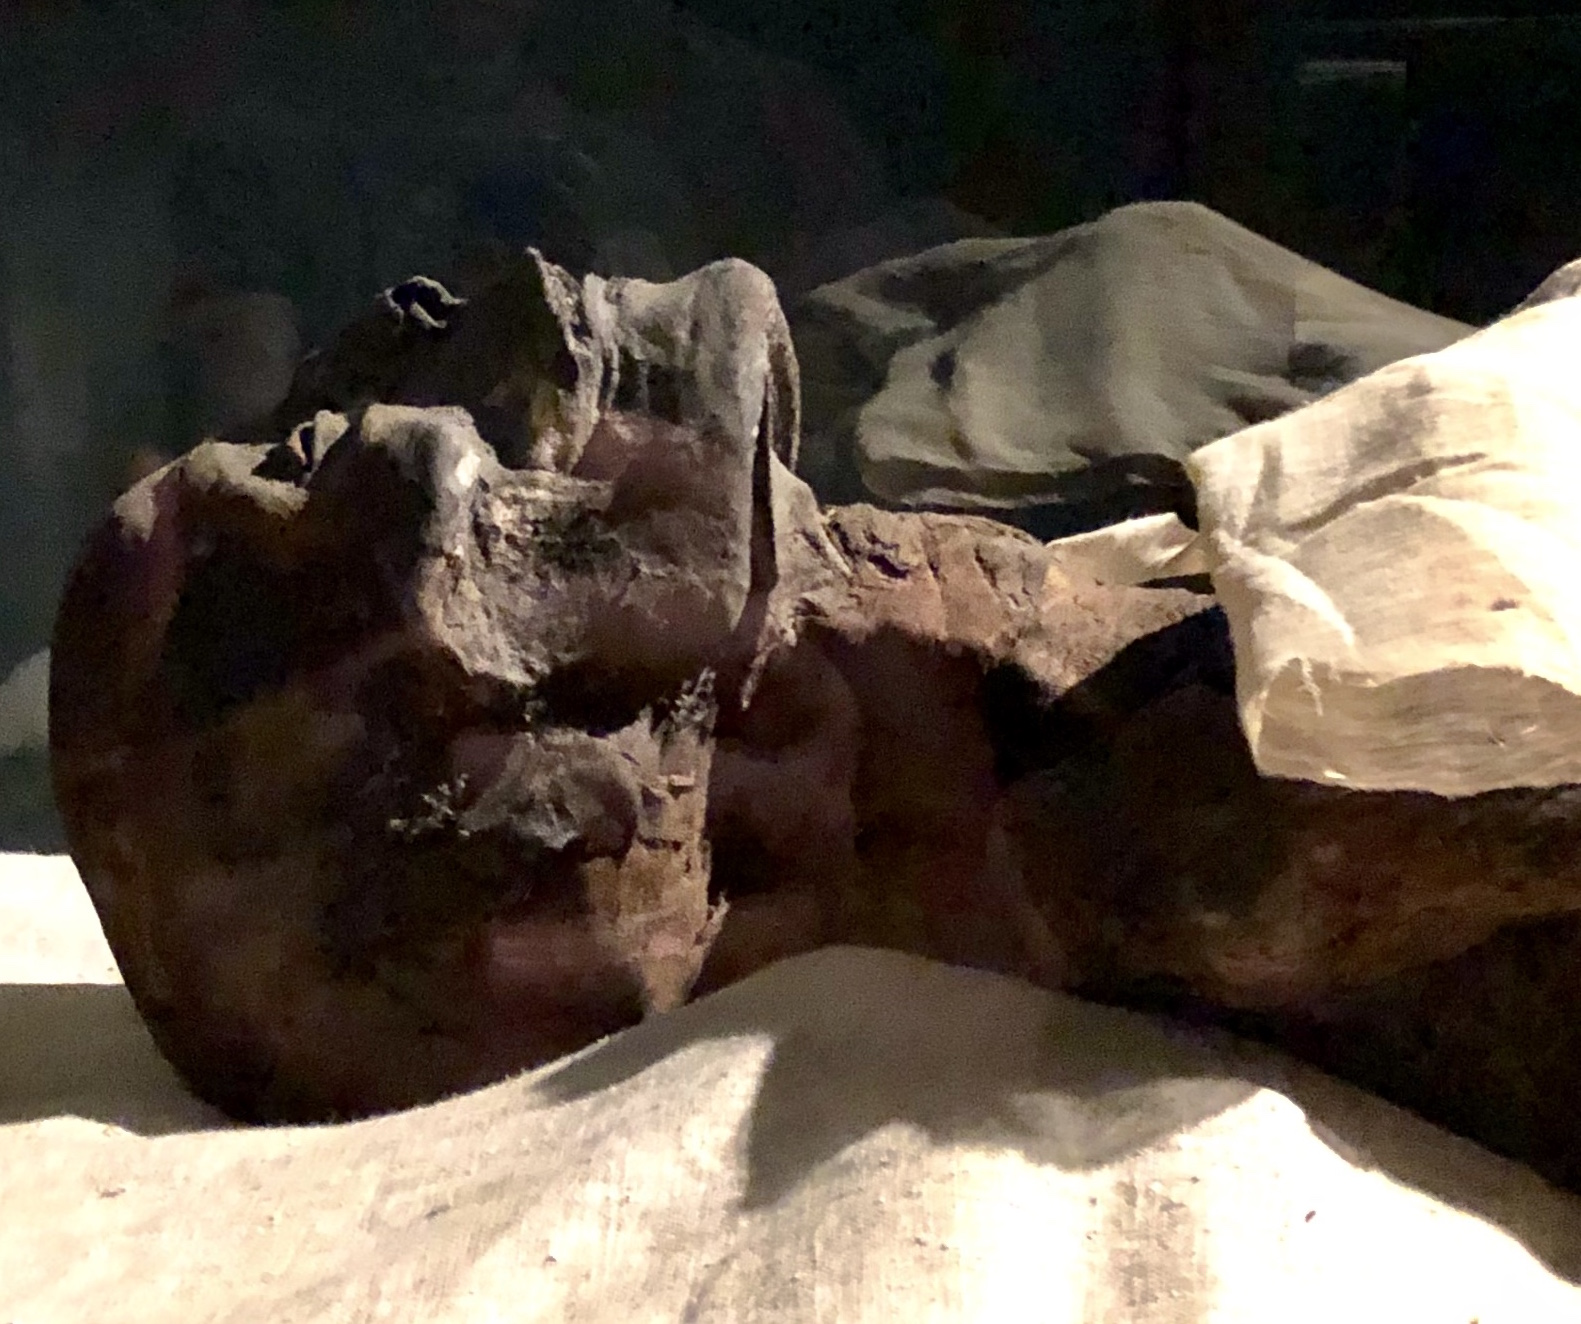 The mummy of Pharaoh Ramesses I as seen in the Luxor Museum. (You can't take photos of the mummies in the Egyptian Museum in Cairo)